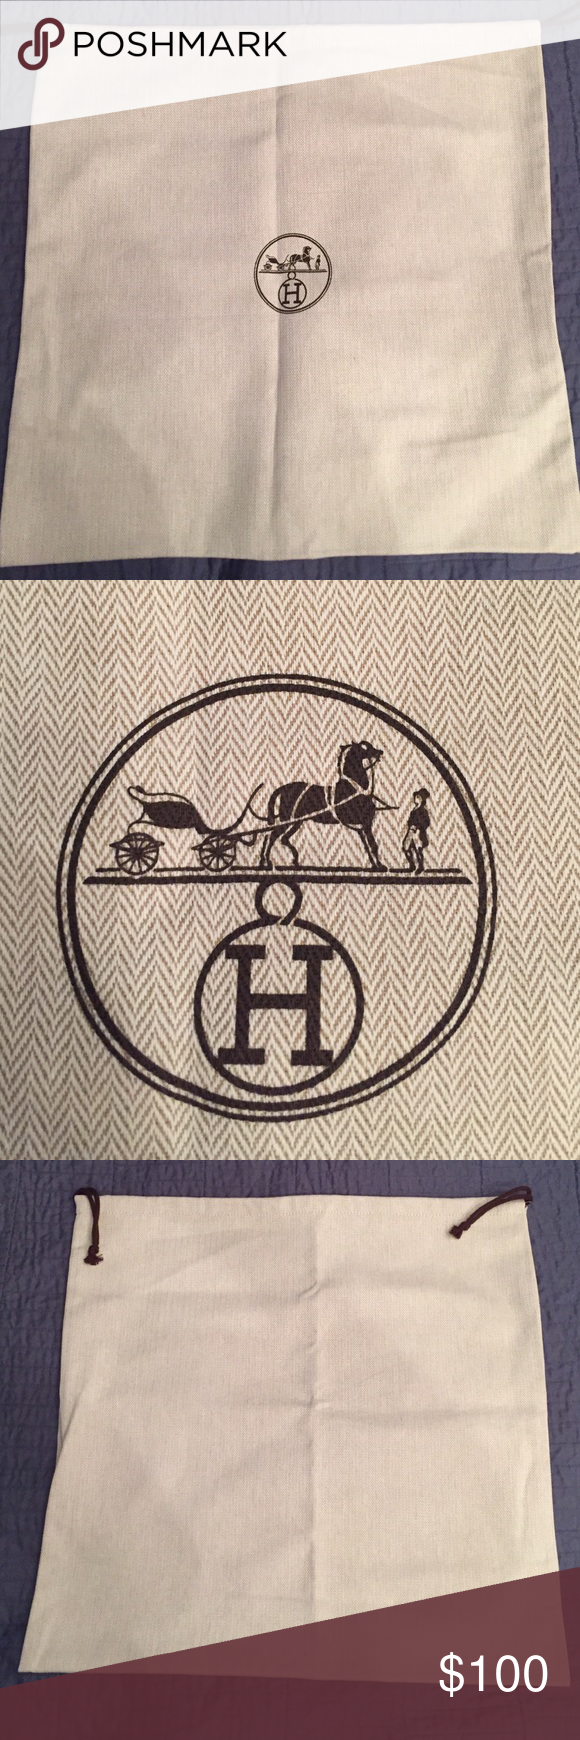 Brand New Authentic Hermes Dust Bag Fits 32cm Kelly Or 30cm Birkin Bags Totes